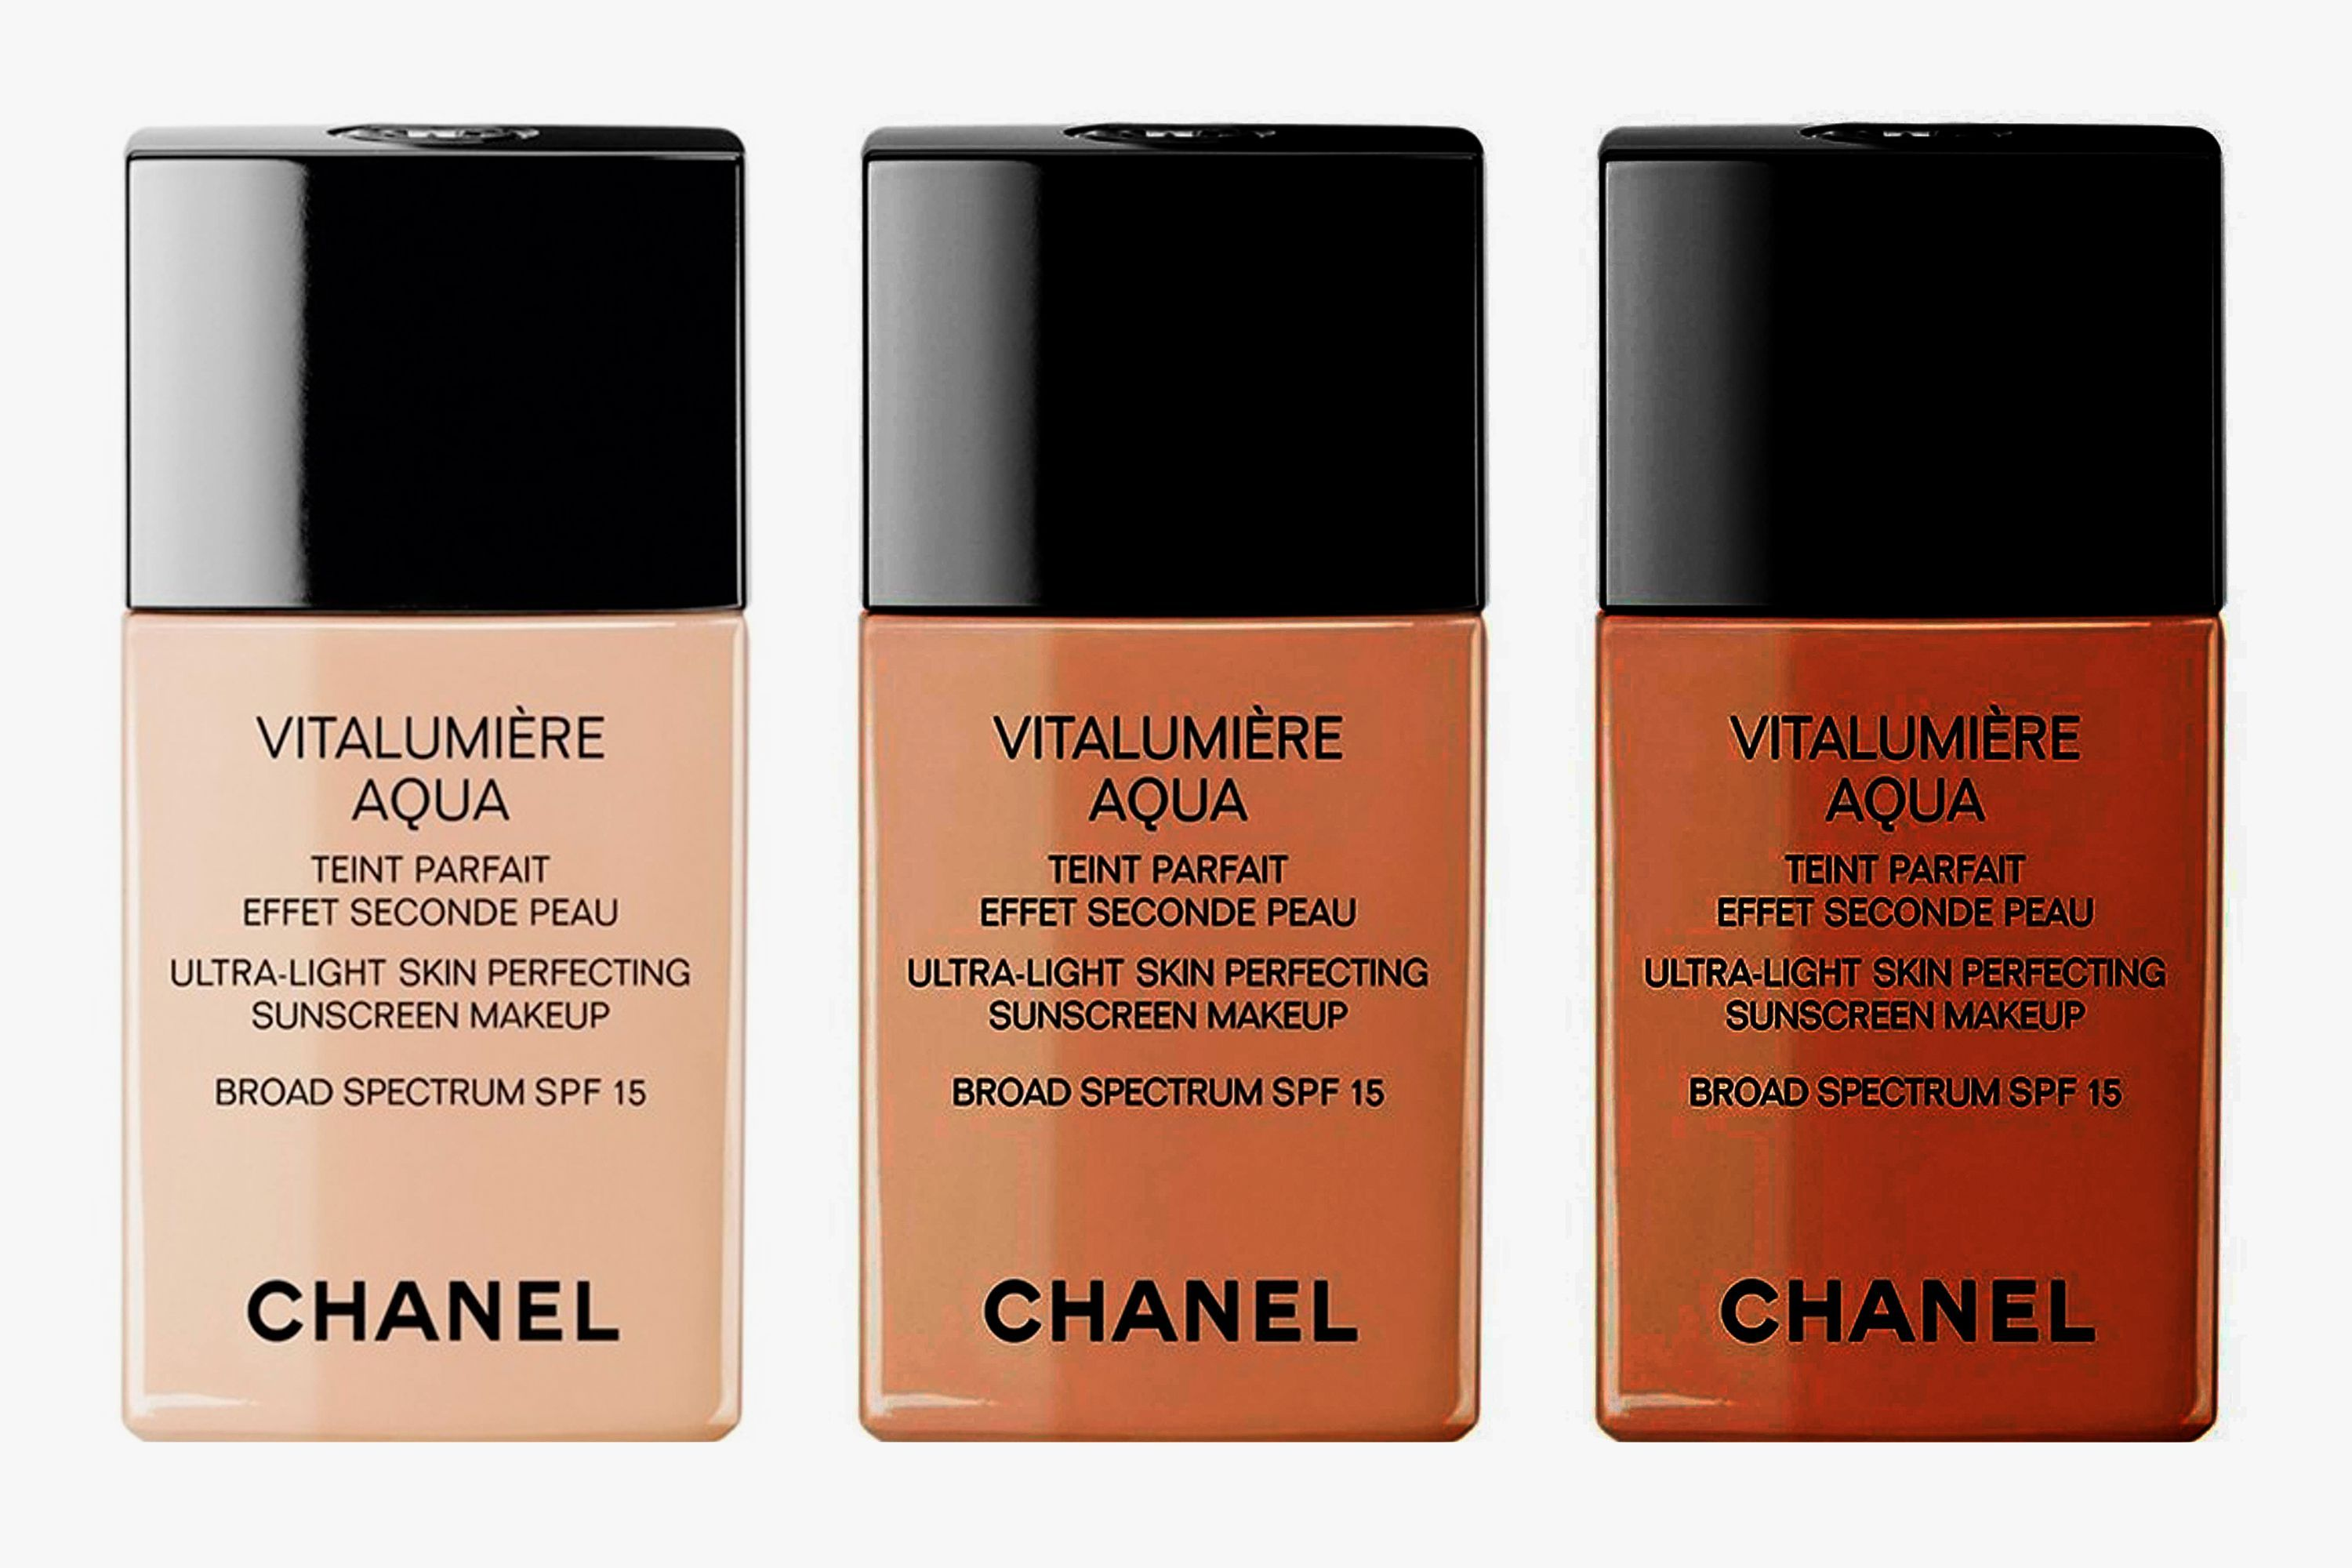 Chanel Vitalumière Aqua Ultra-Light Skin Perfecting Sunscreen Makeup Broad Spectrum SPF 15